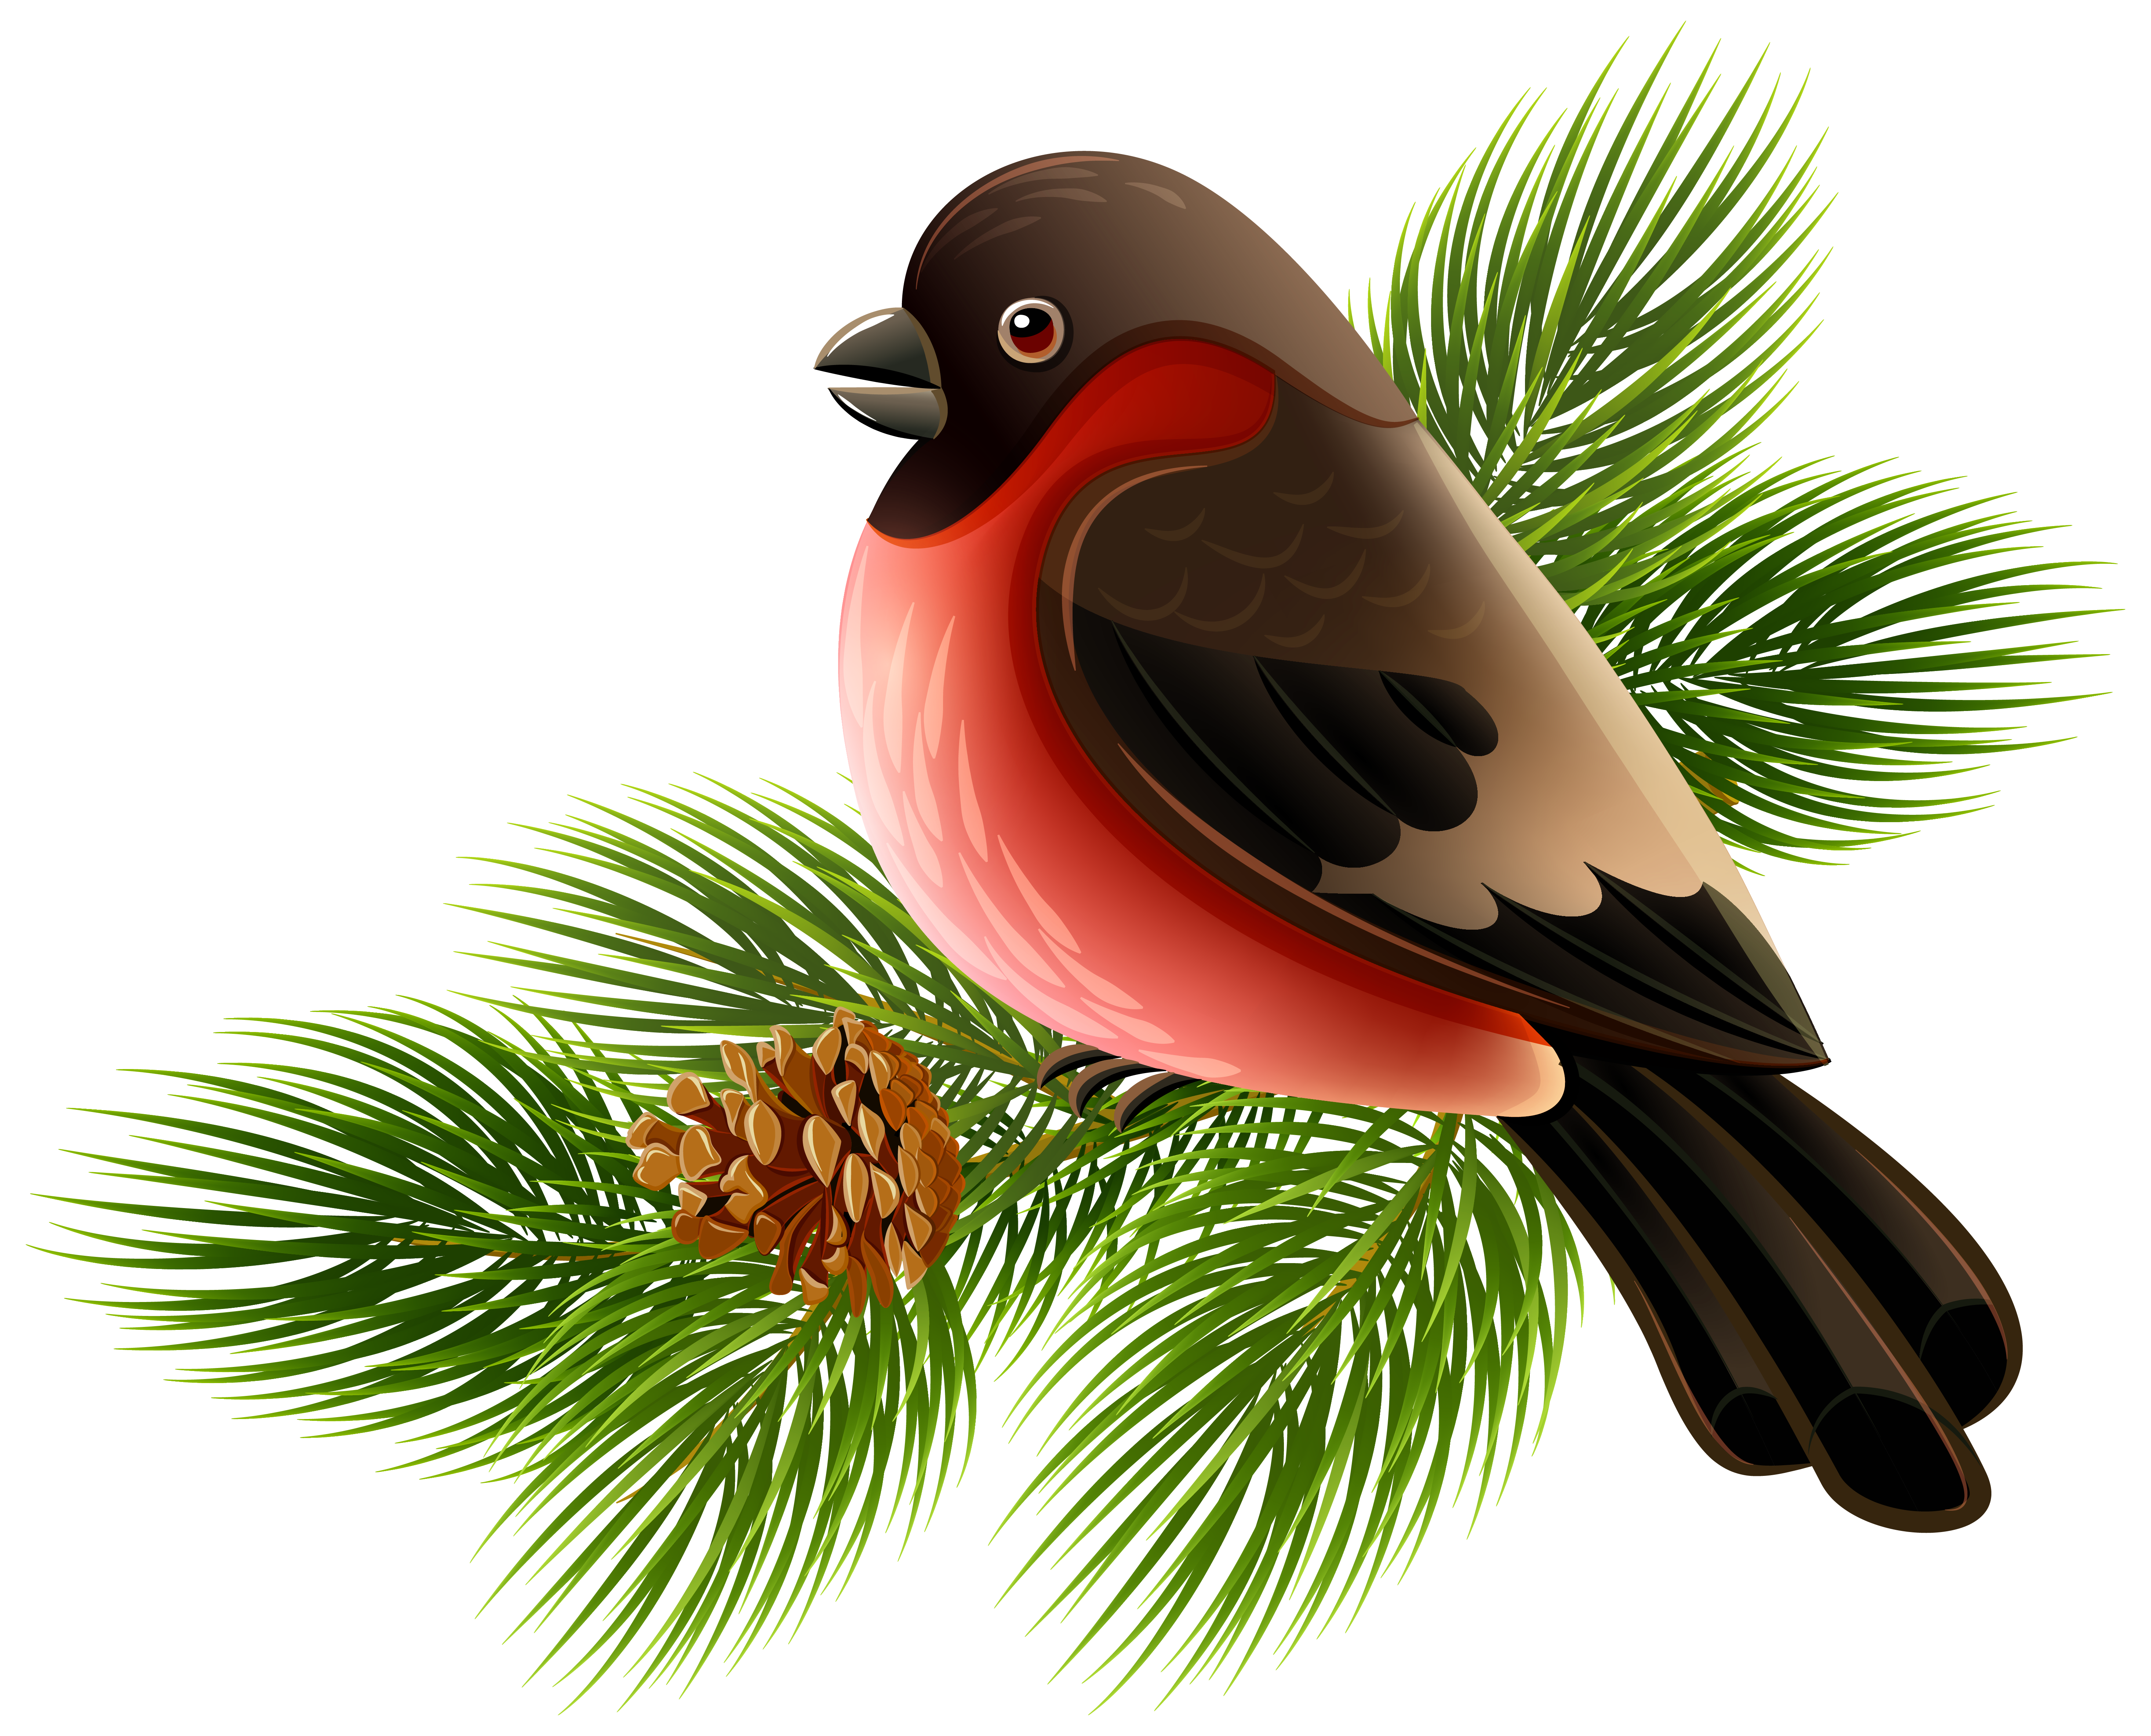 Bird on a branch png. And pine clipart image